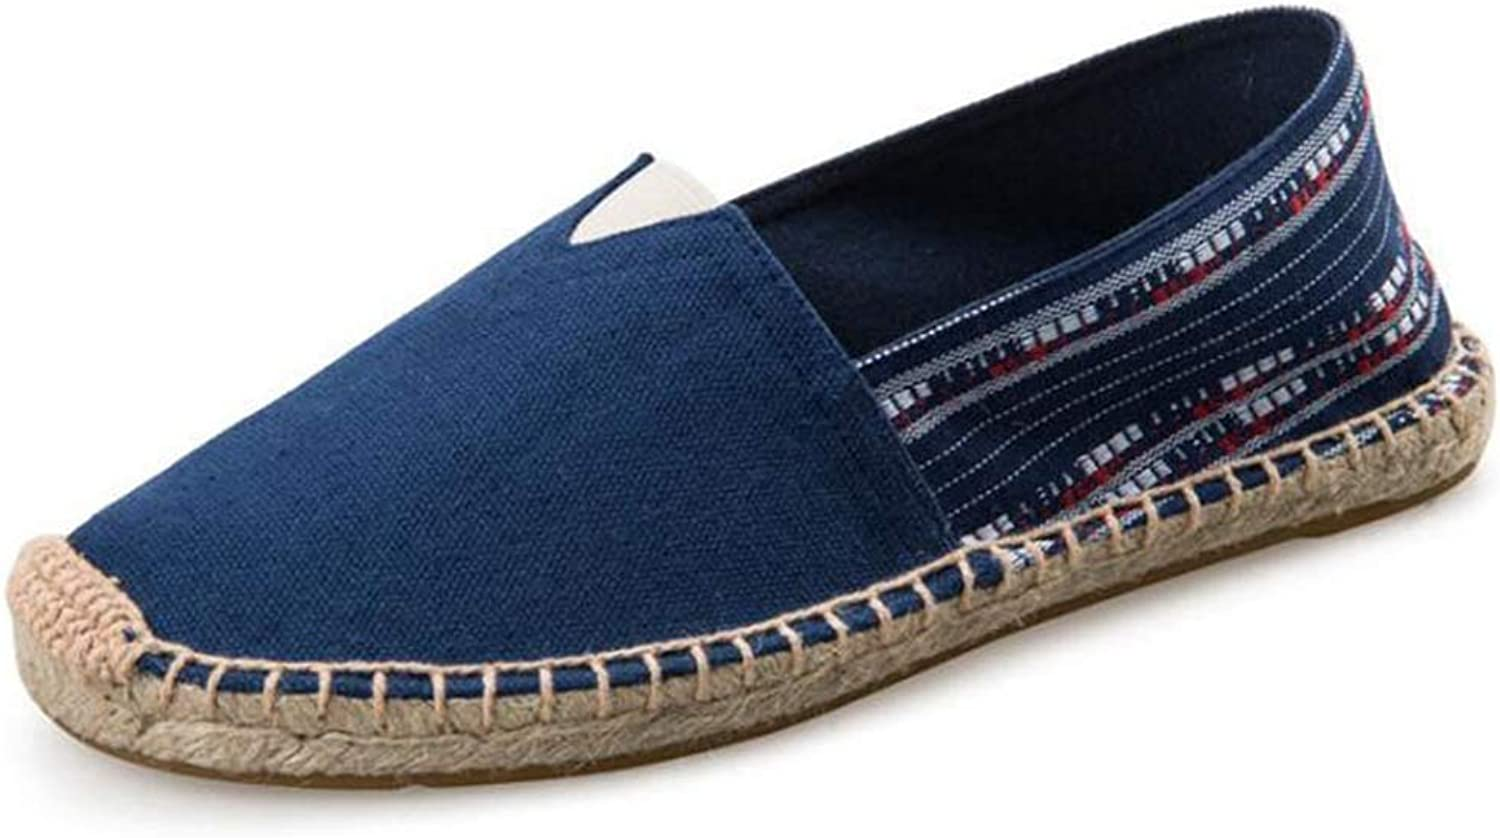 T-JULY Women Espadrille Loafers Flat shoes Female Breathable Canvas Hemp Insole Casual Leisure shoes